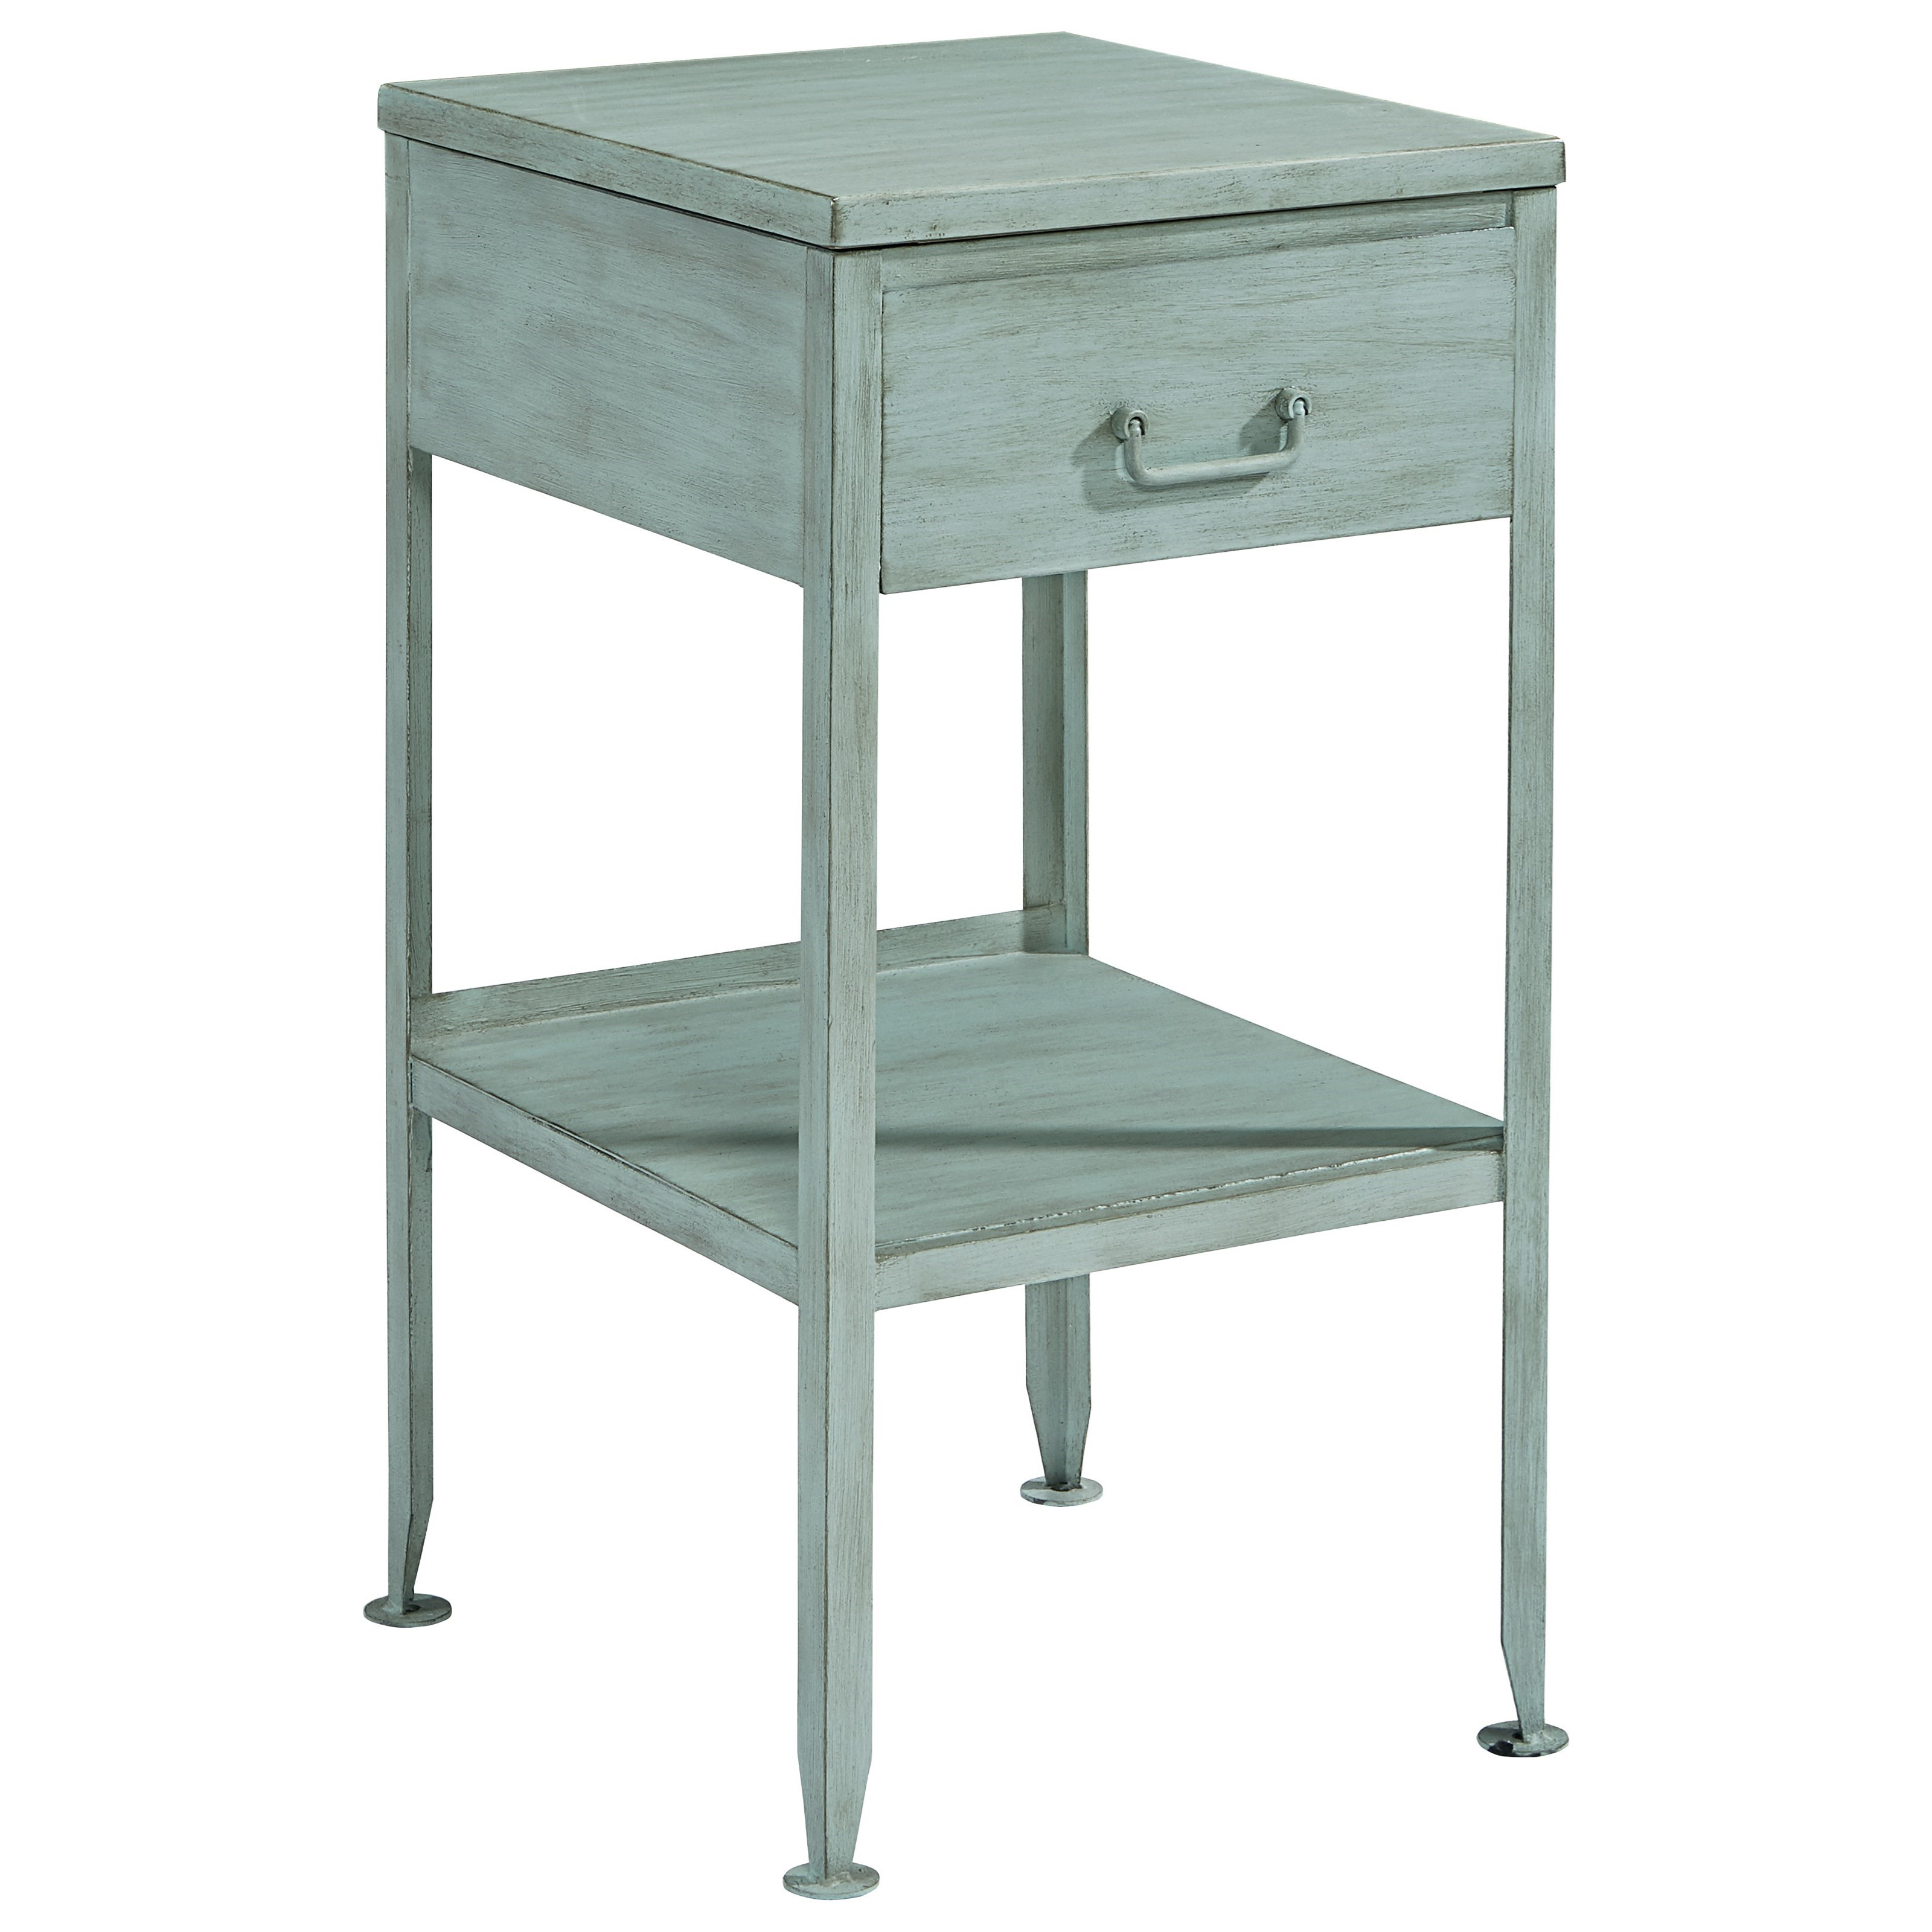 Metal End Tables ~ Magnolia home by joanna gaines accent elements small metal